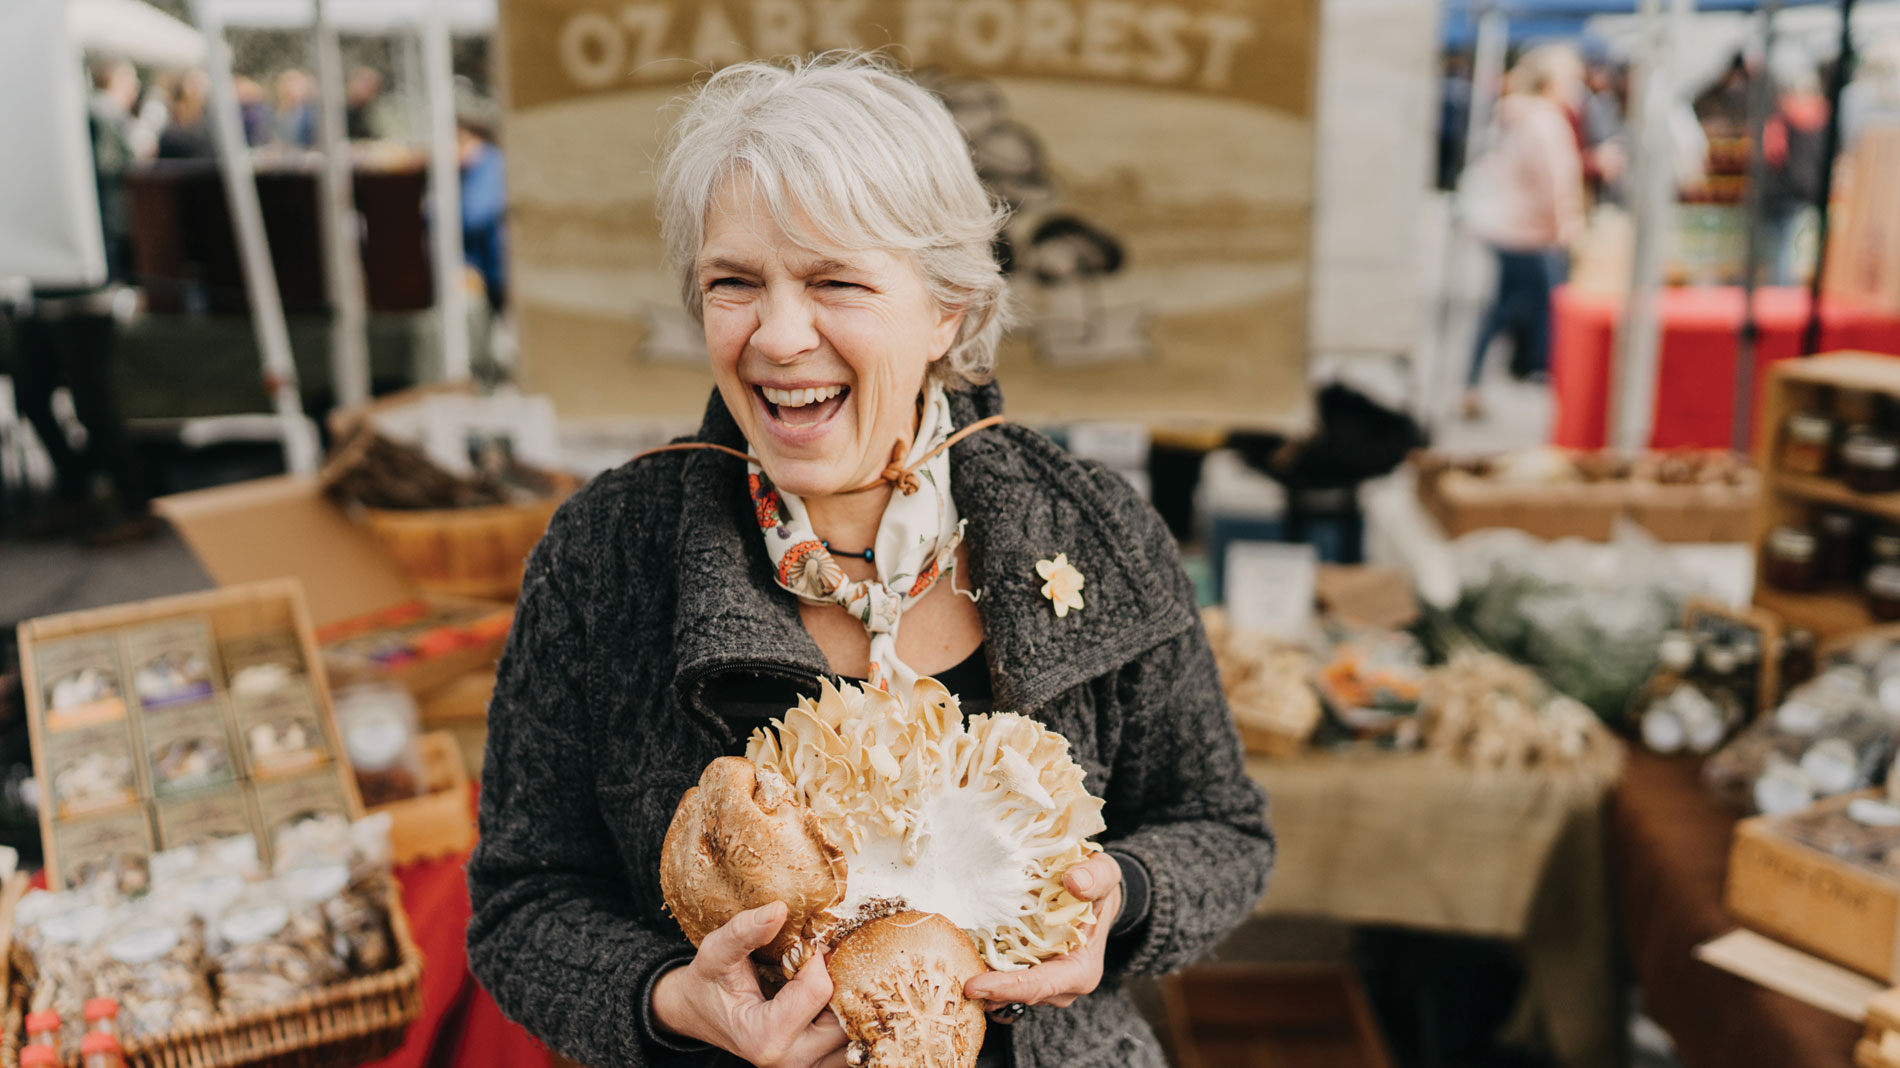 a laughing woman with a very large shiitake mushroom